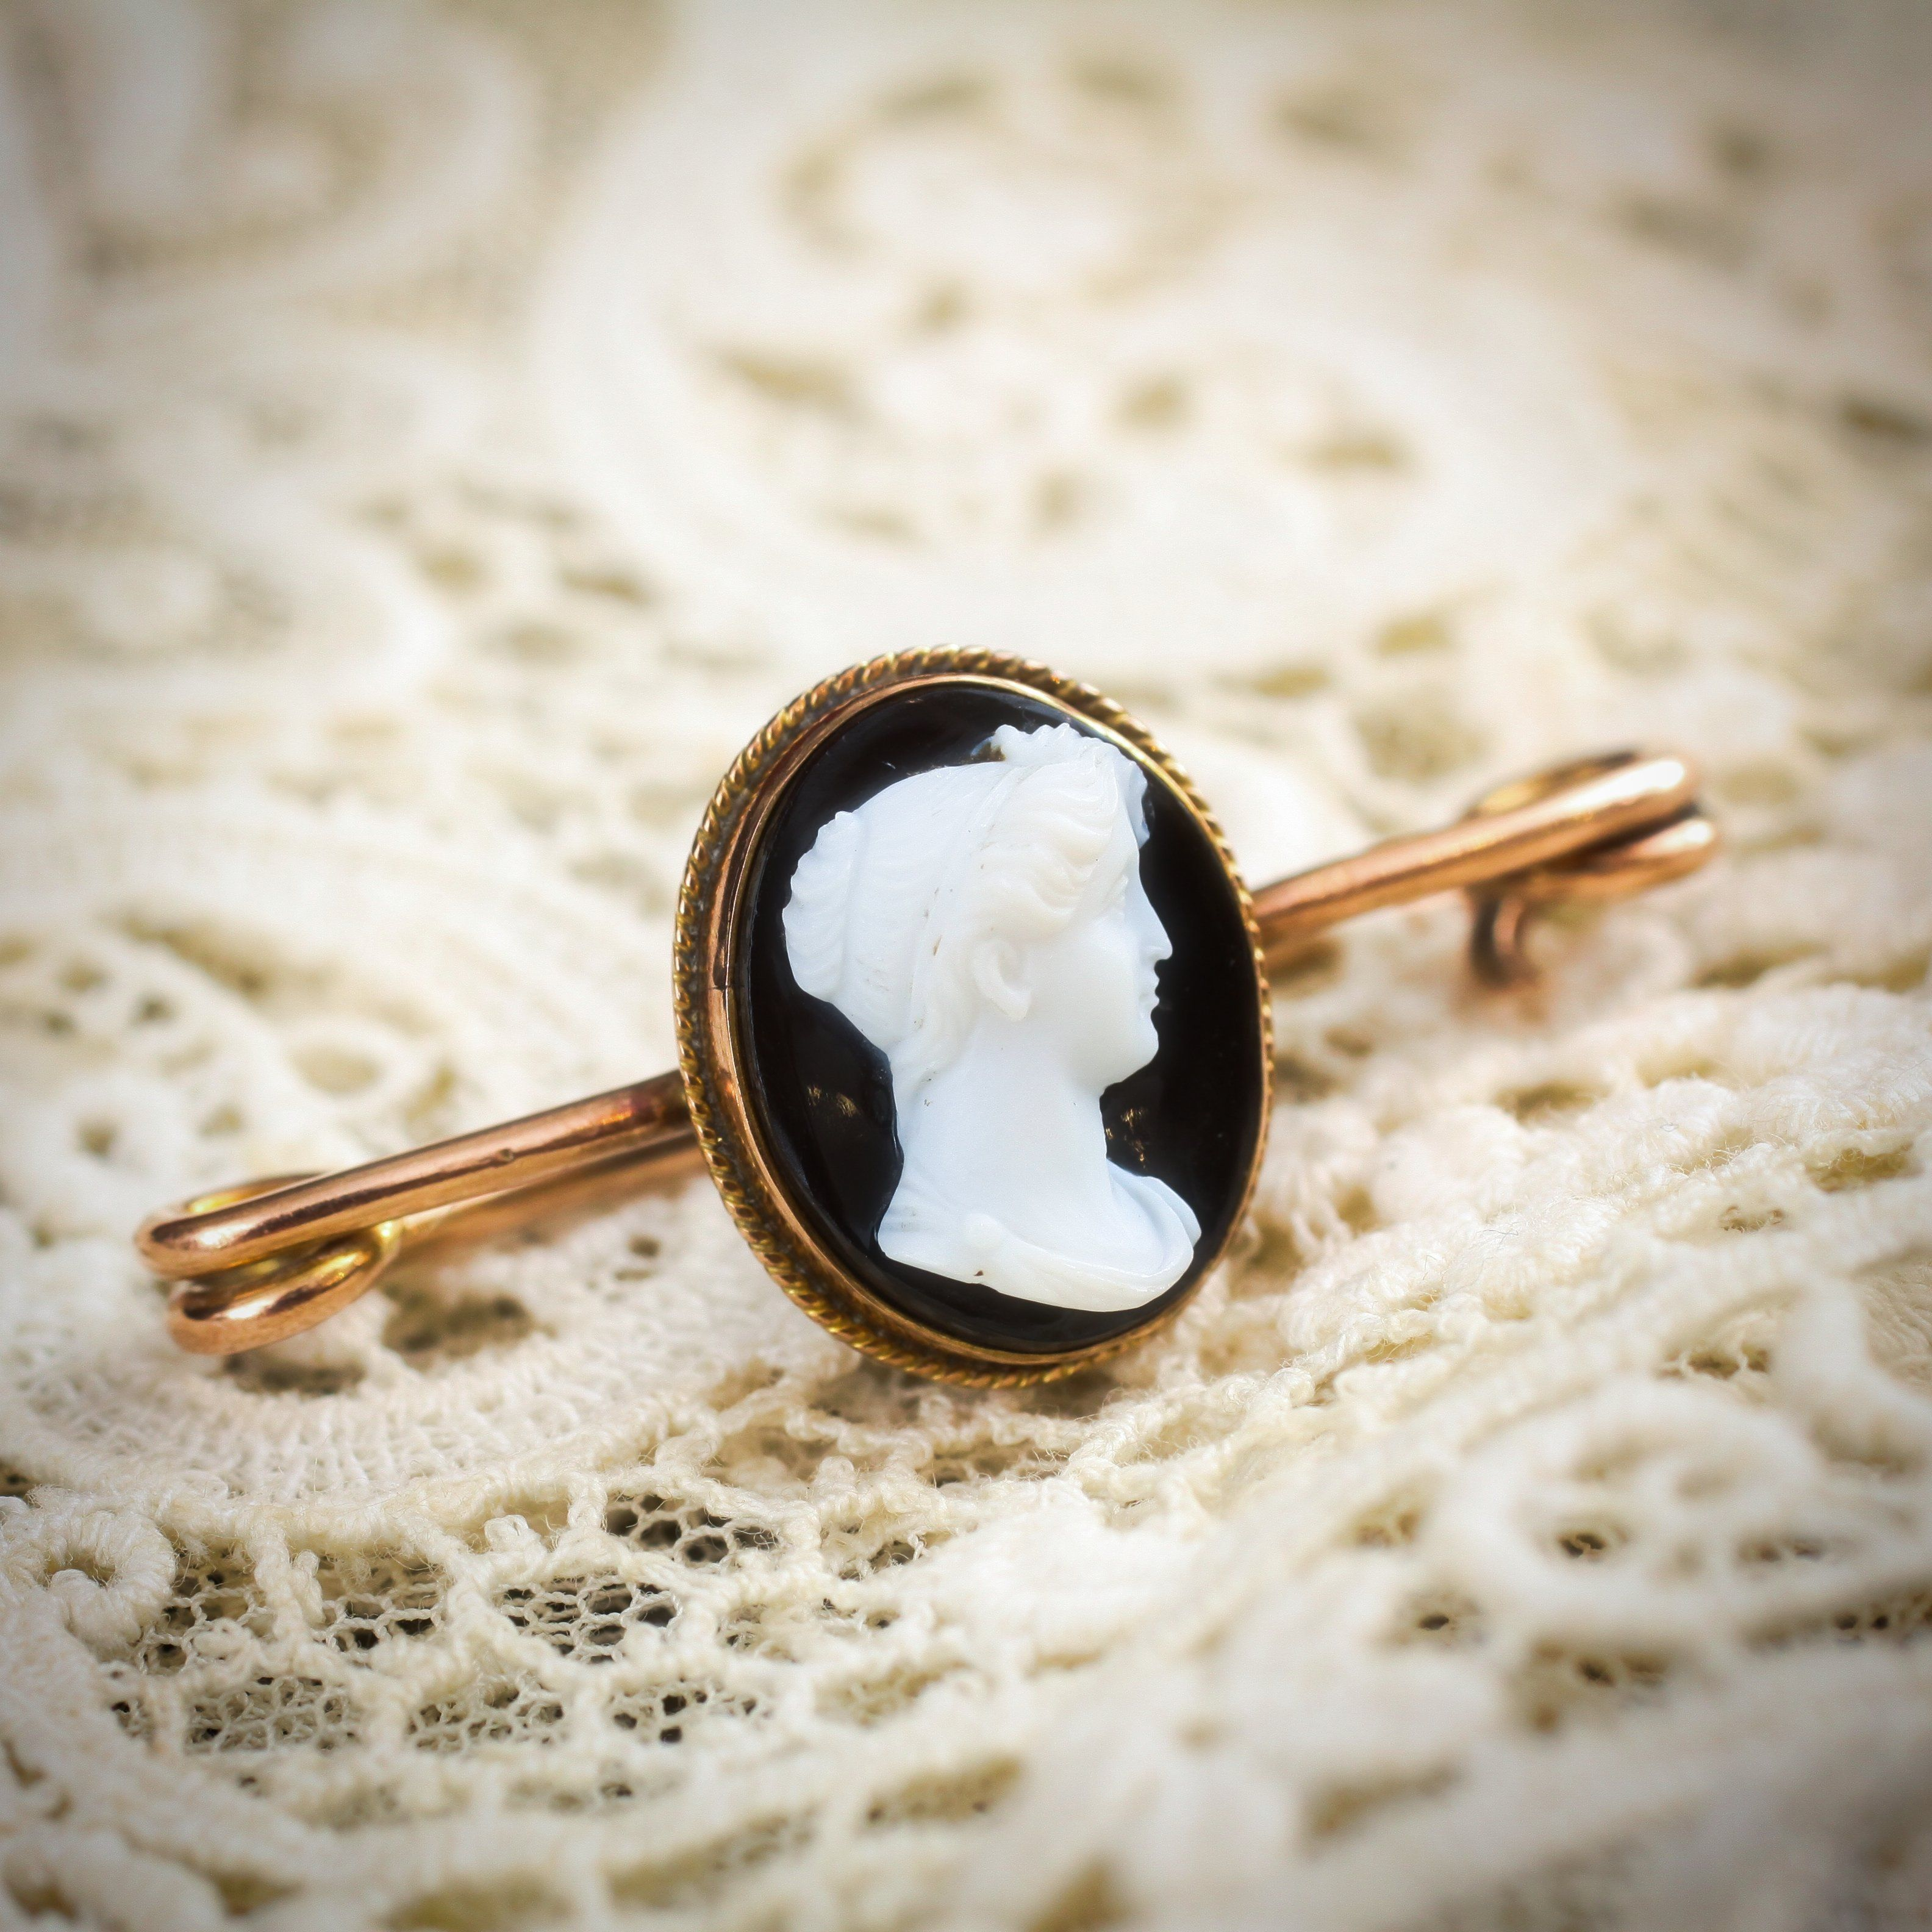 A refined antique victorian glass cameo pin brooch 23500